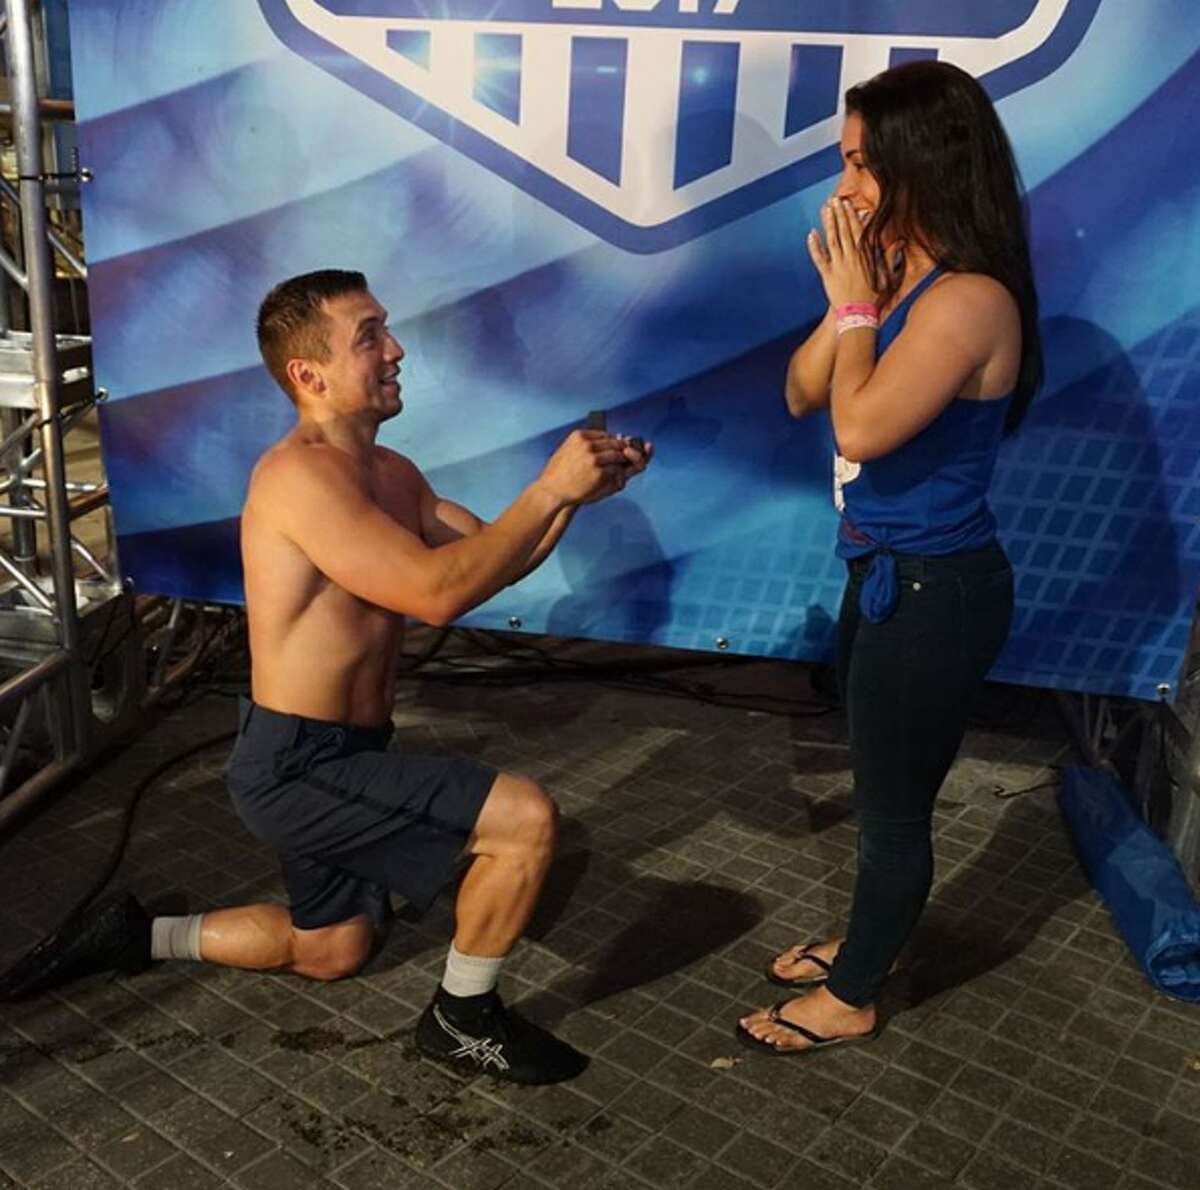 From swinging through American Ninja Warrior's overhead rings to pulling out an engagement ring, Maxo Soria picked San Antonio to make two dreams come true in one night when he ran the course and proposed to Paris Ryder.